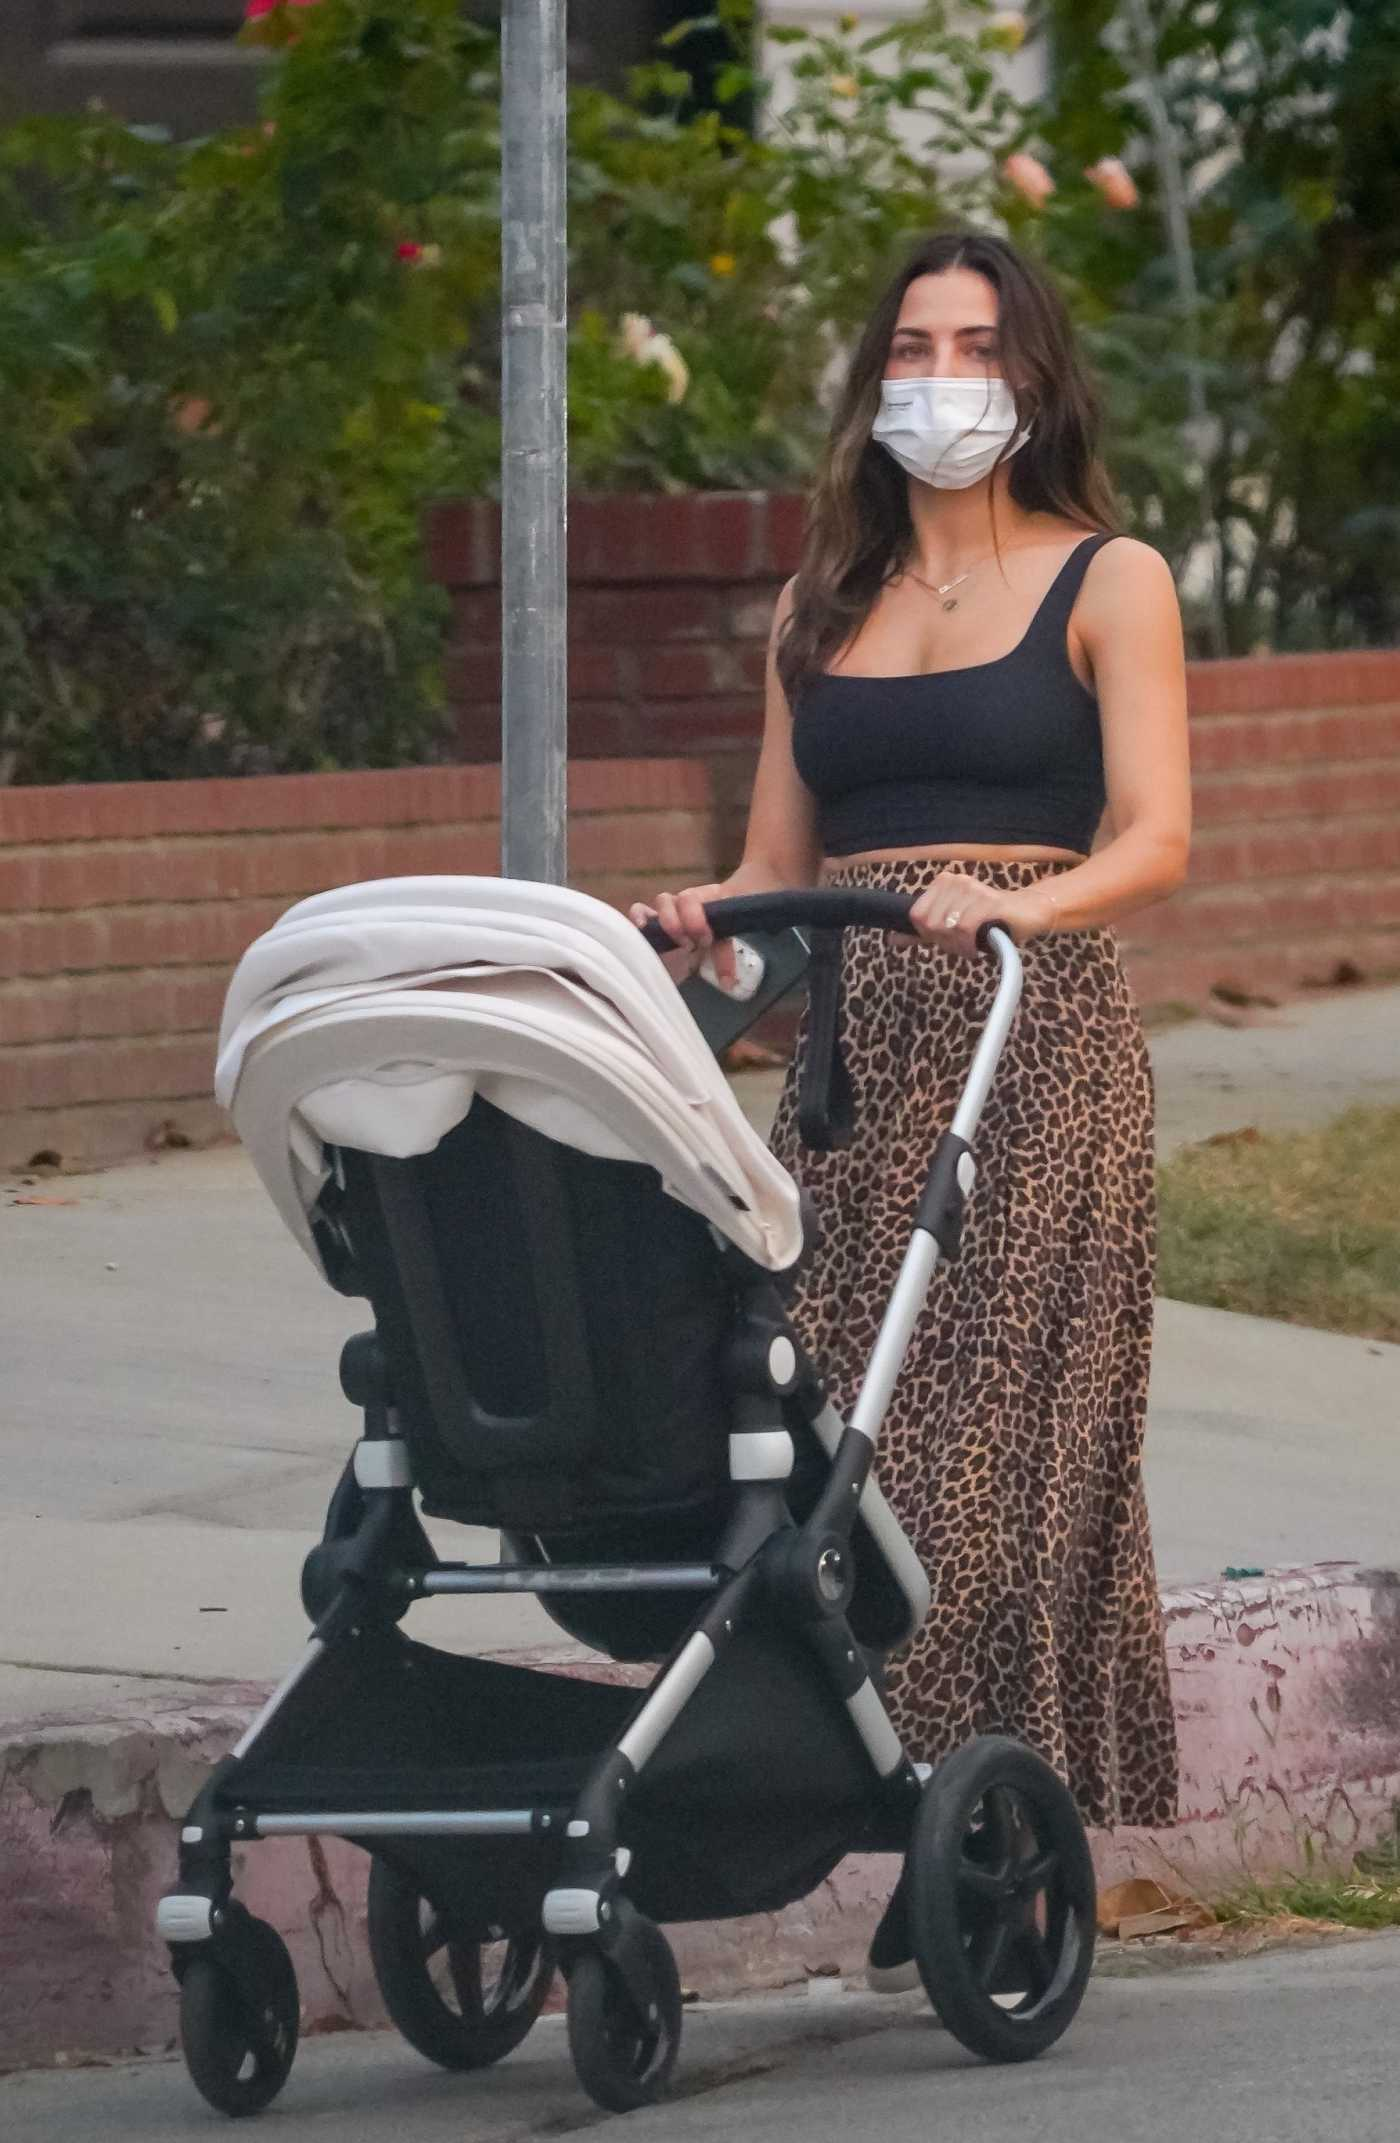 Jenna Dewan in a Black Top Takes Her Baby for a Walk in Los Angeles 10/15/2020